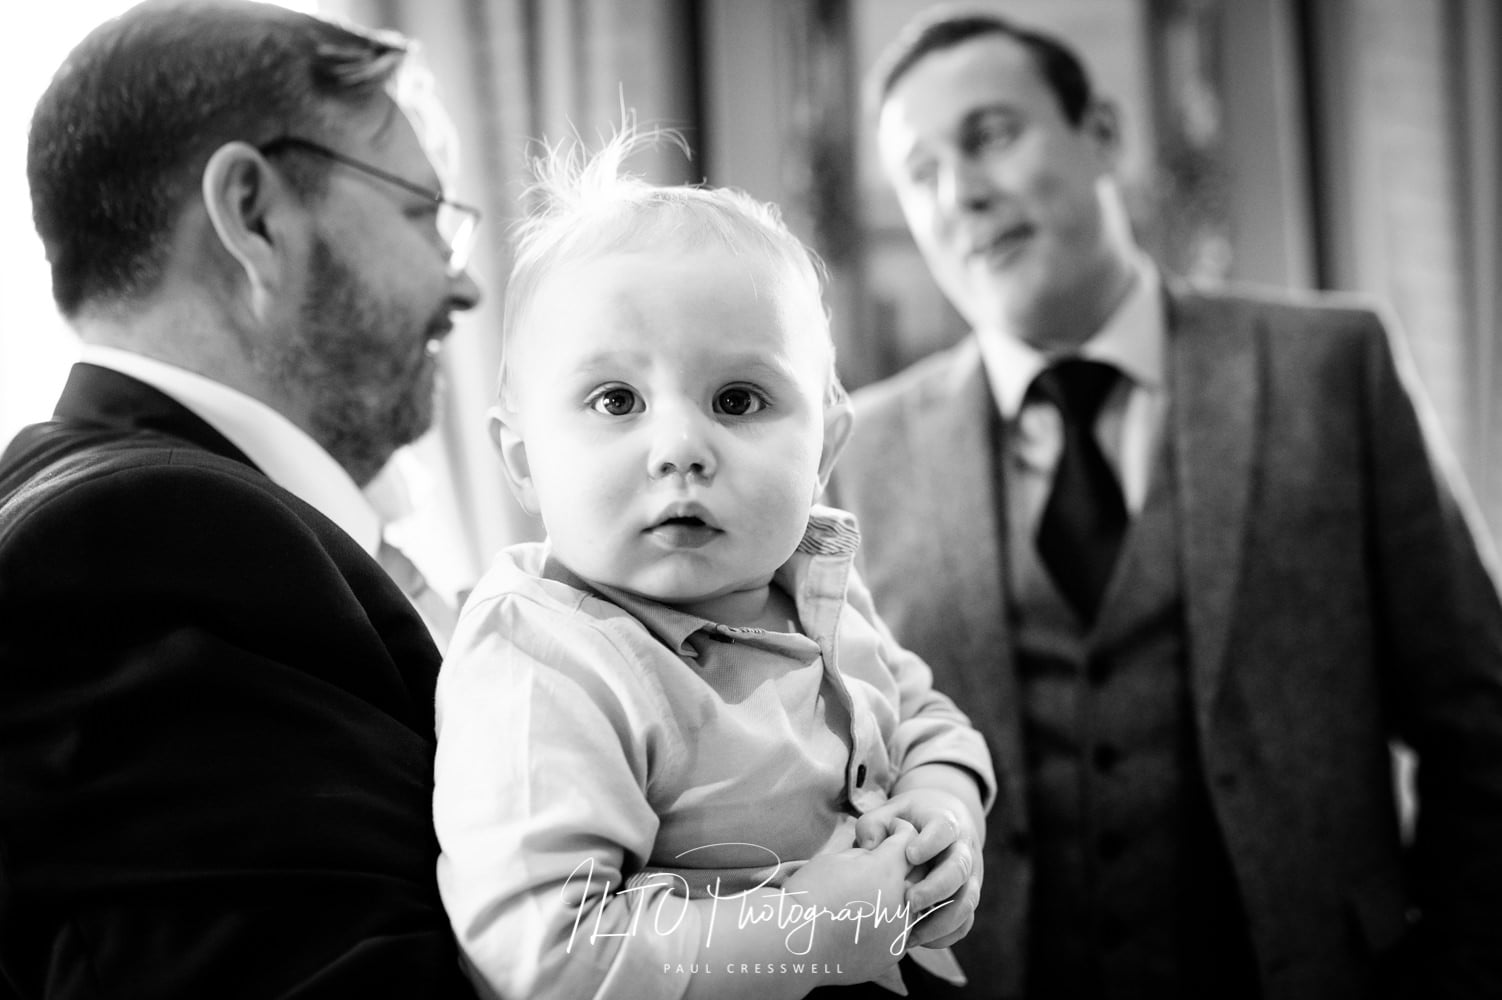 Candid wedding photography, ILTO photography west yorkshire wedding photographer